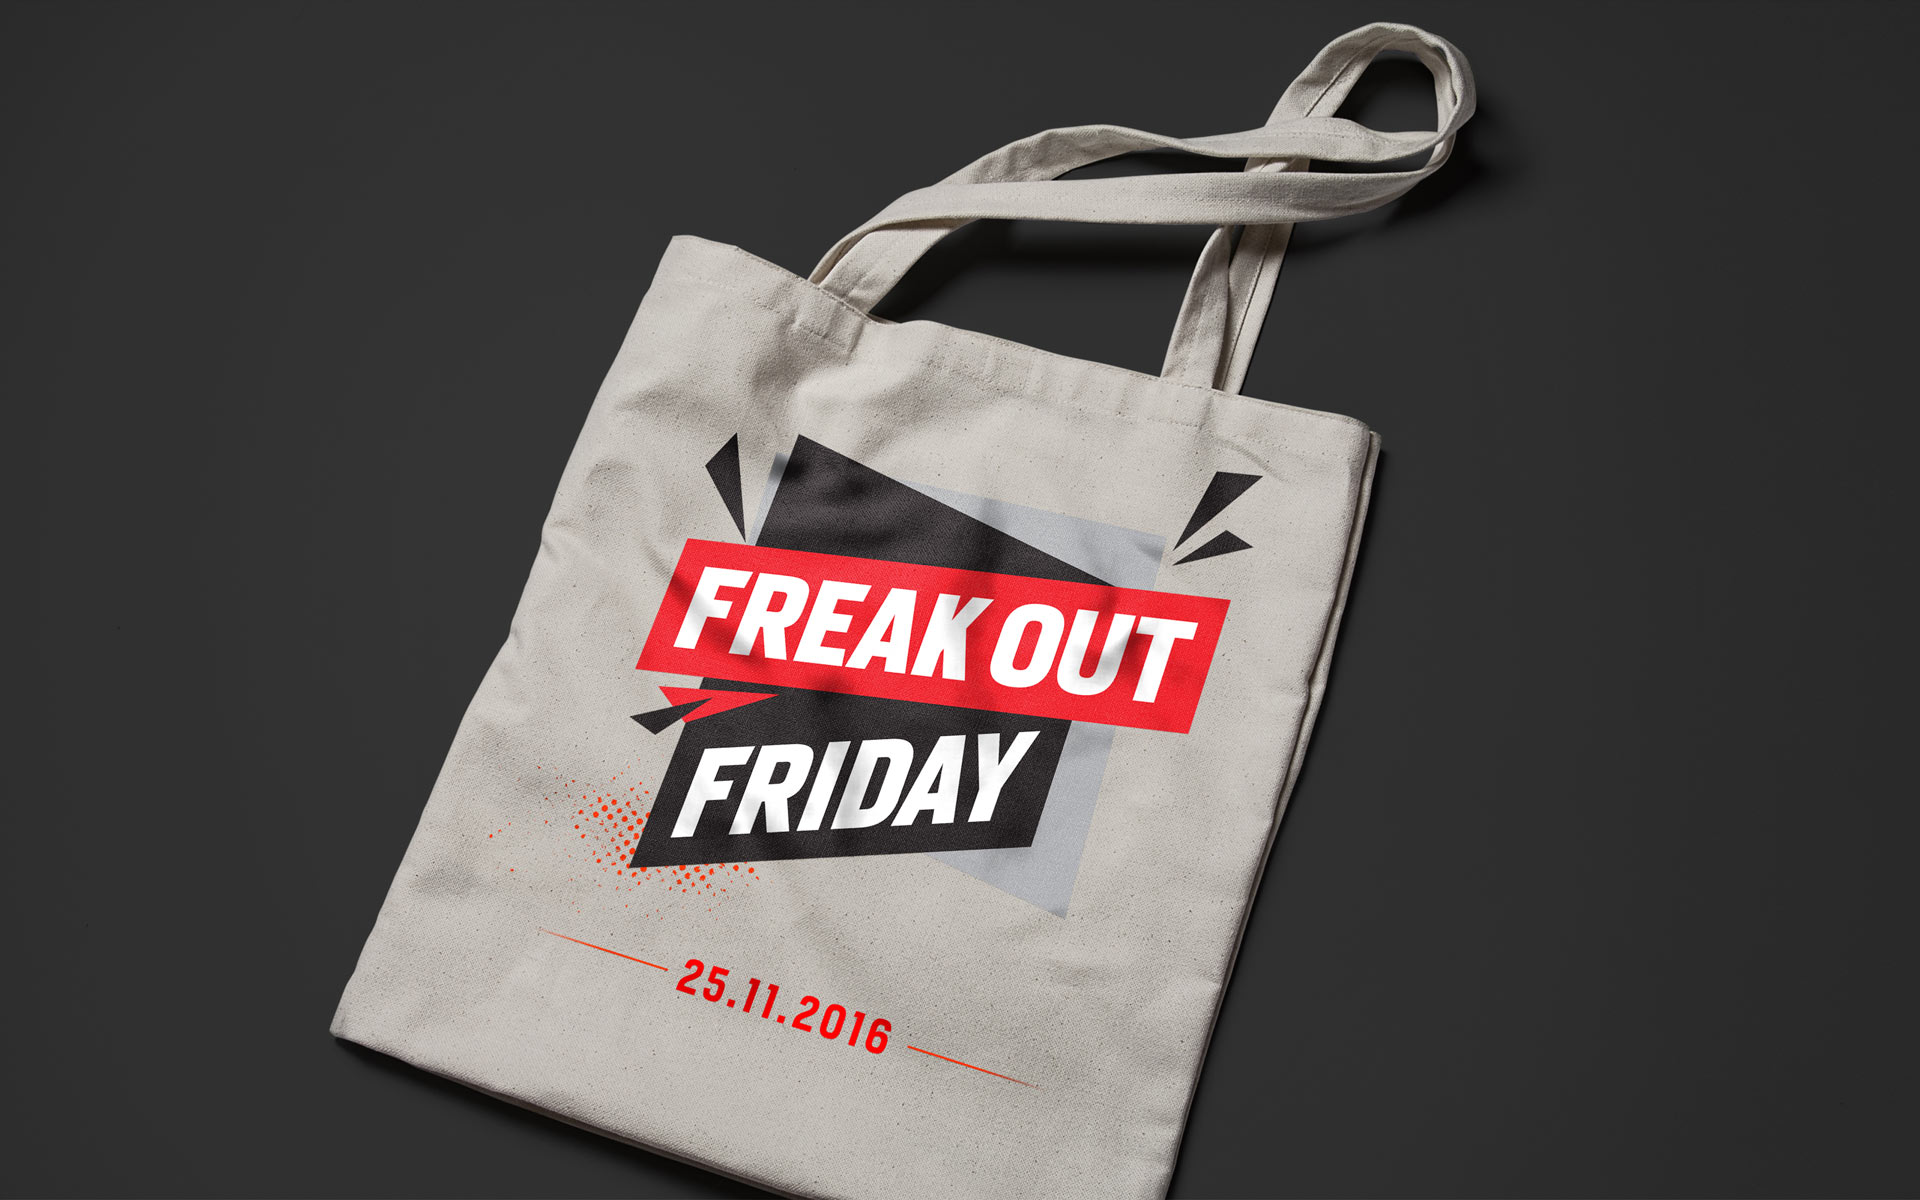 "Saleskampagne ""Freakout Friday"", Bayer 04 Leverkusen, Markenkommunikation, Corporate Design, Merchandising, Stofftasche"